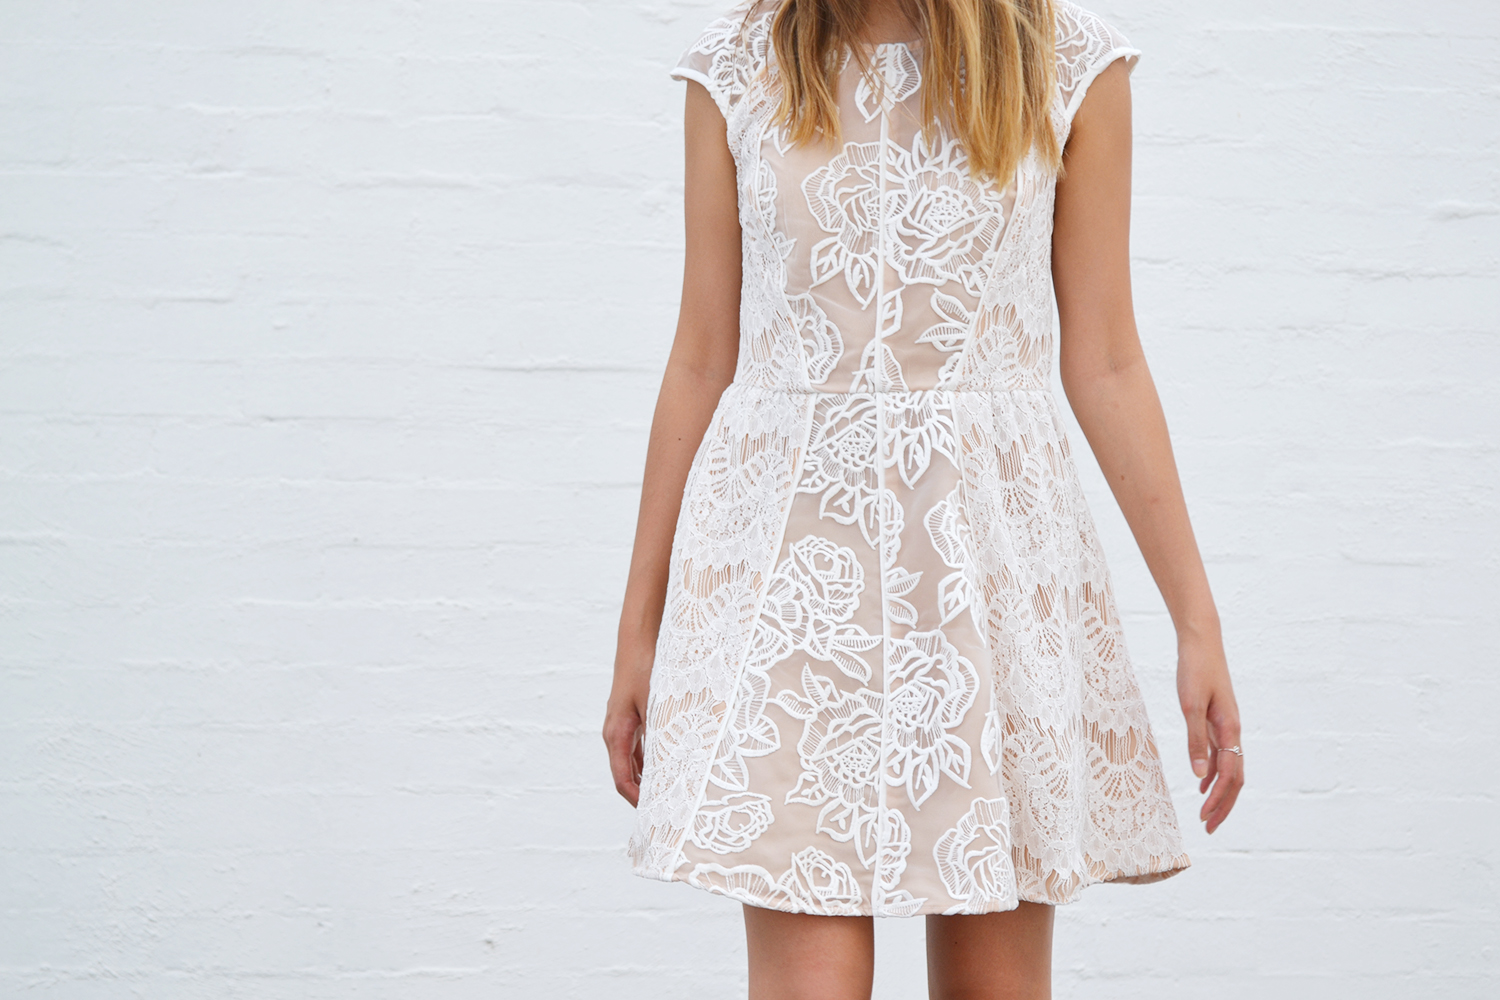 vivcha_fashion_blogger_blog_stylestalker_dress_australian_design_melbourne_valentines_day_1.jpg